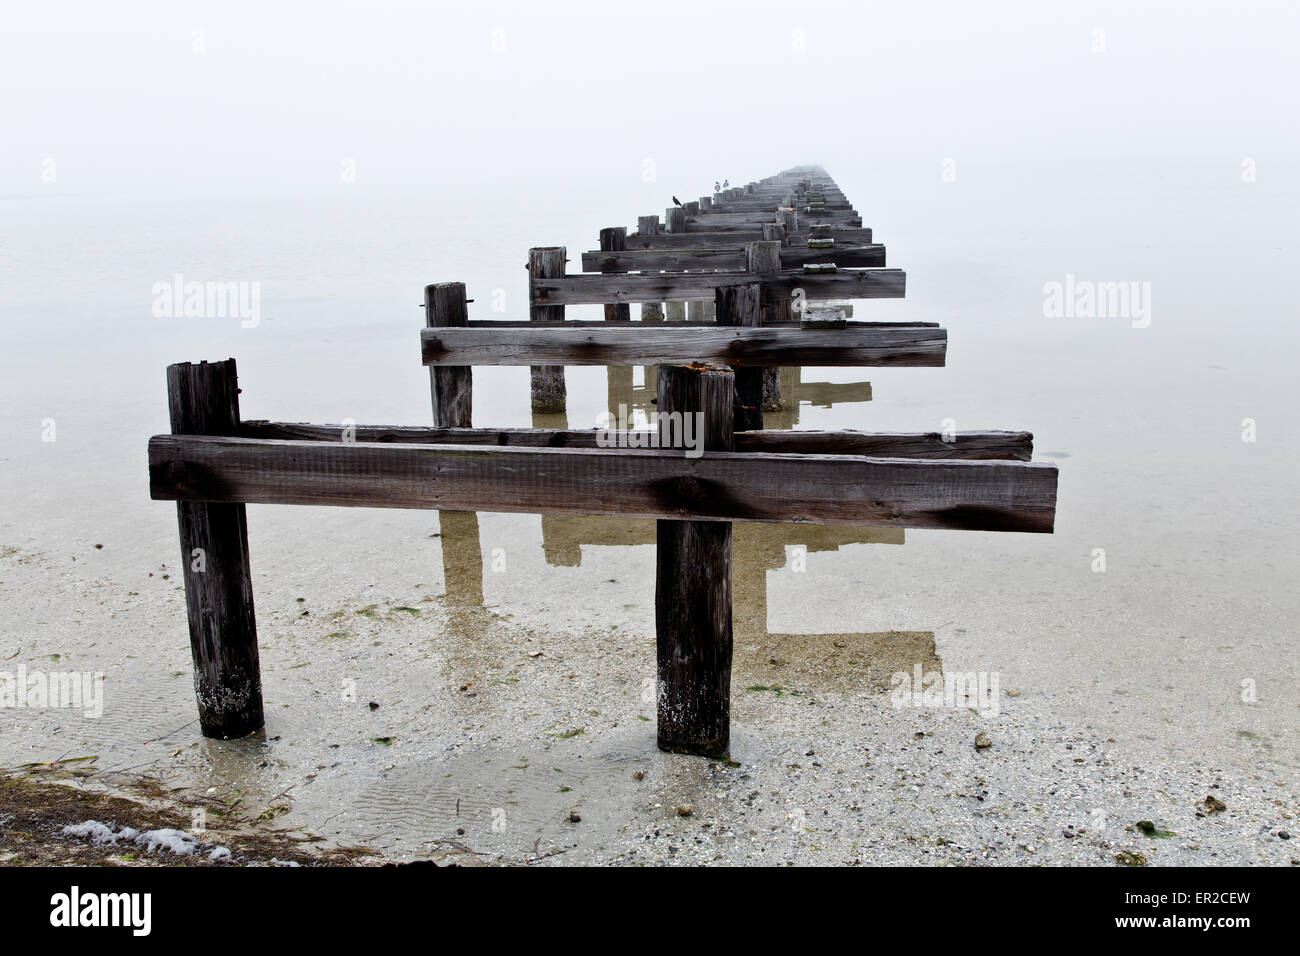 Abandoned  wood pier disappearing into foggy waterway. - Stock Image